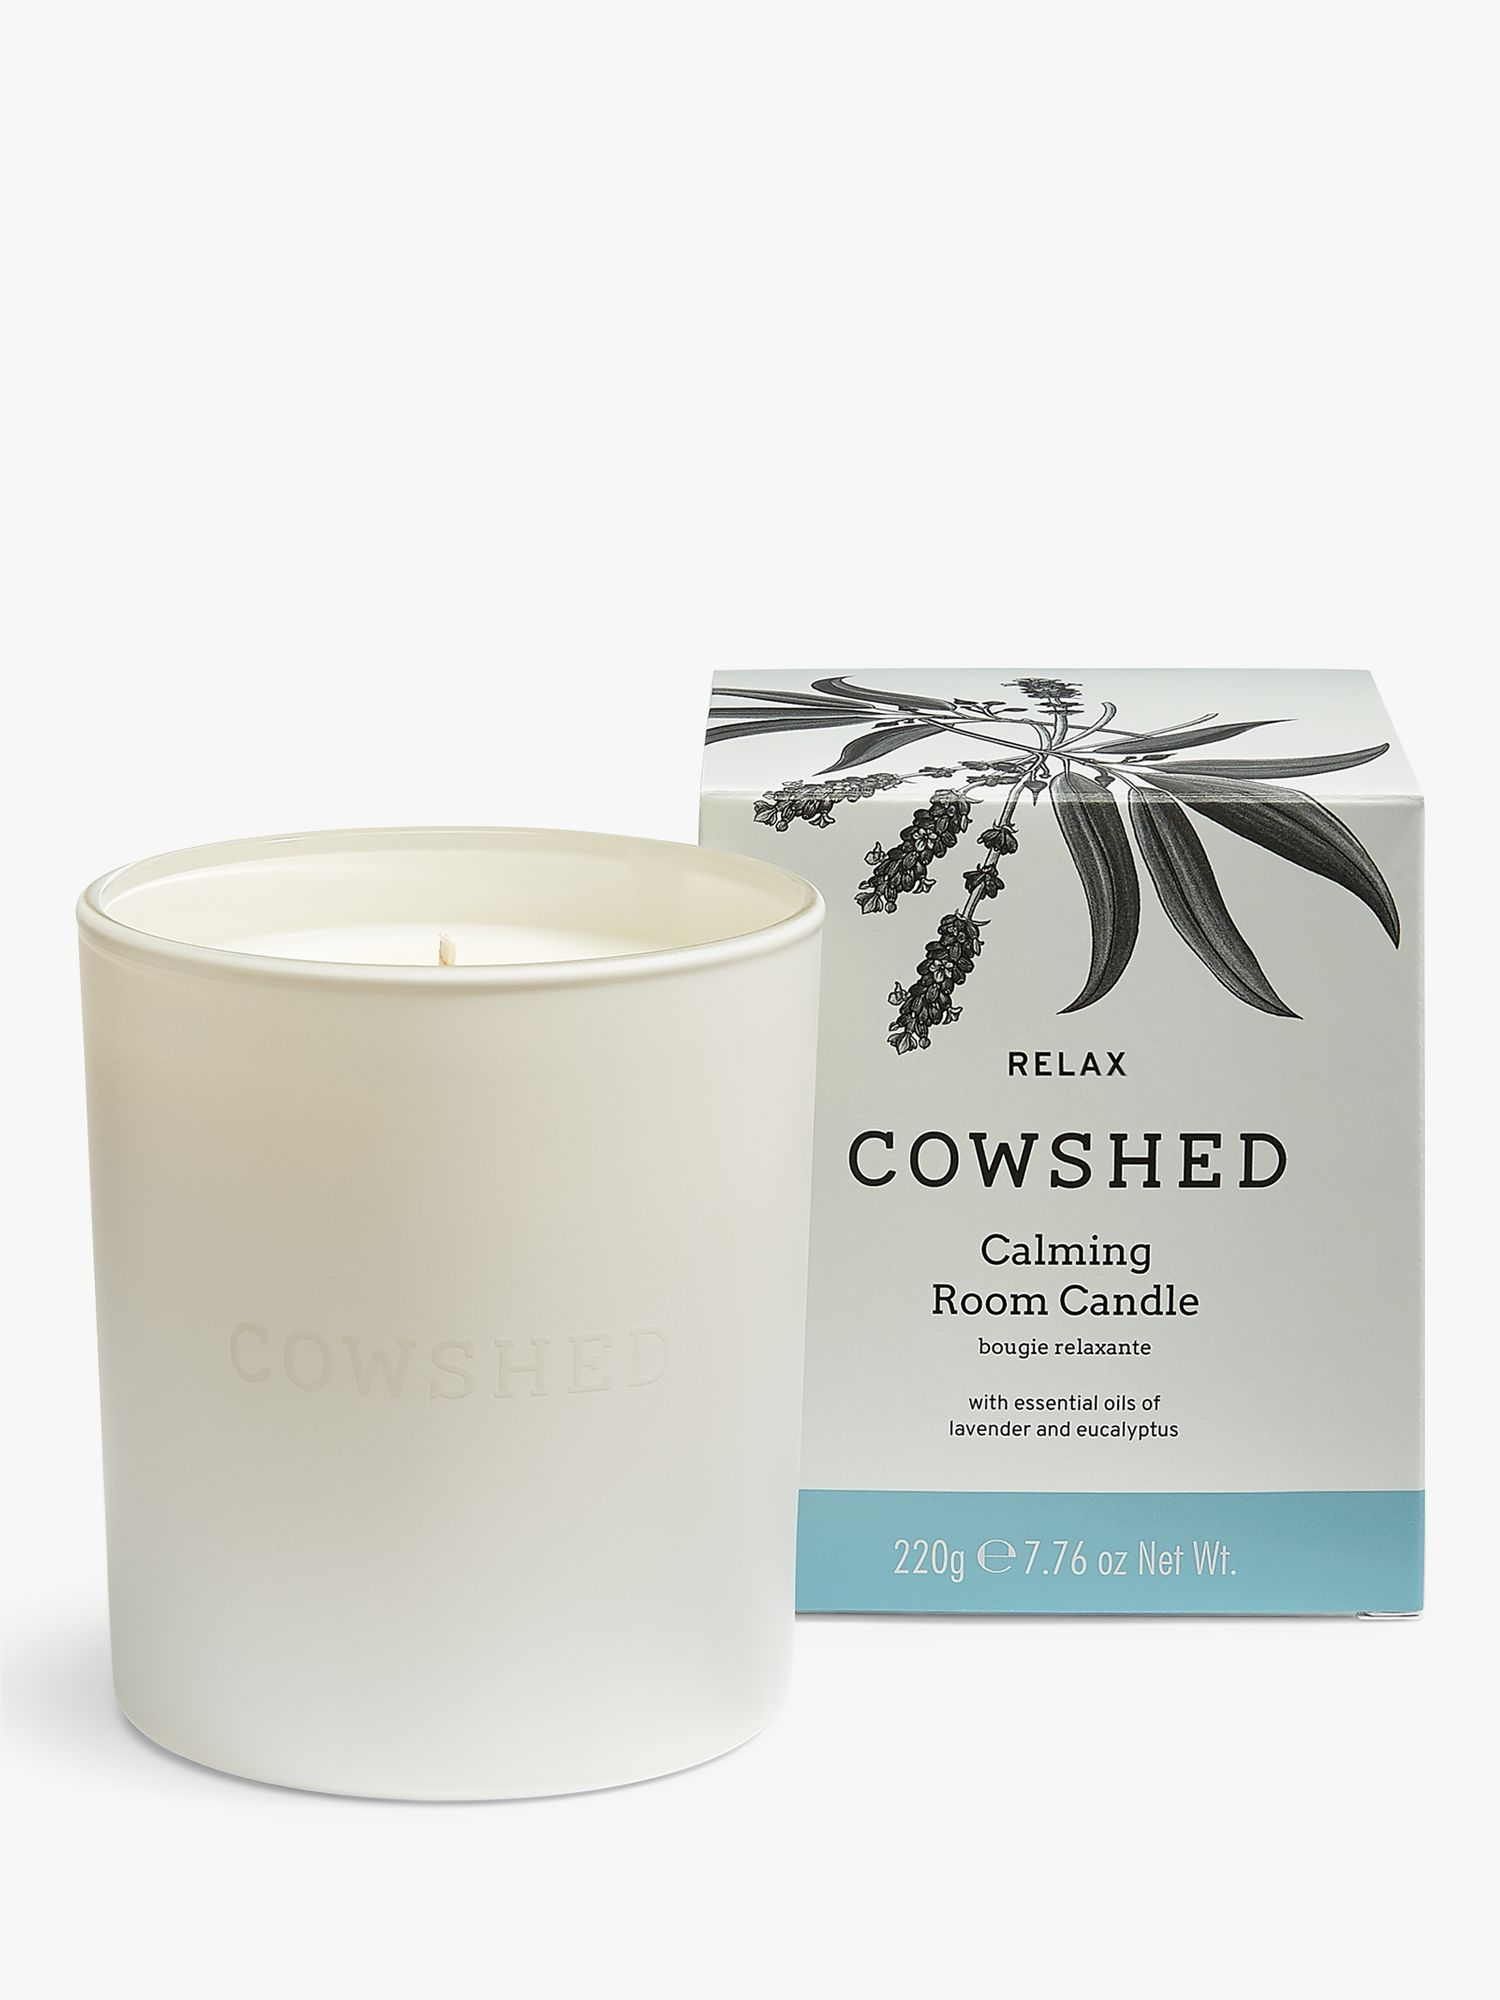 Cowshed Cowshed Relax Calming Room Candle, 220g